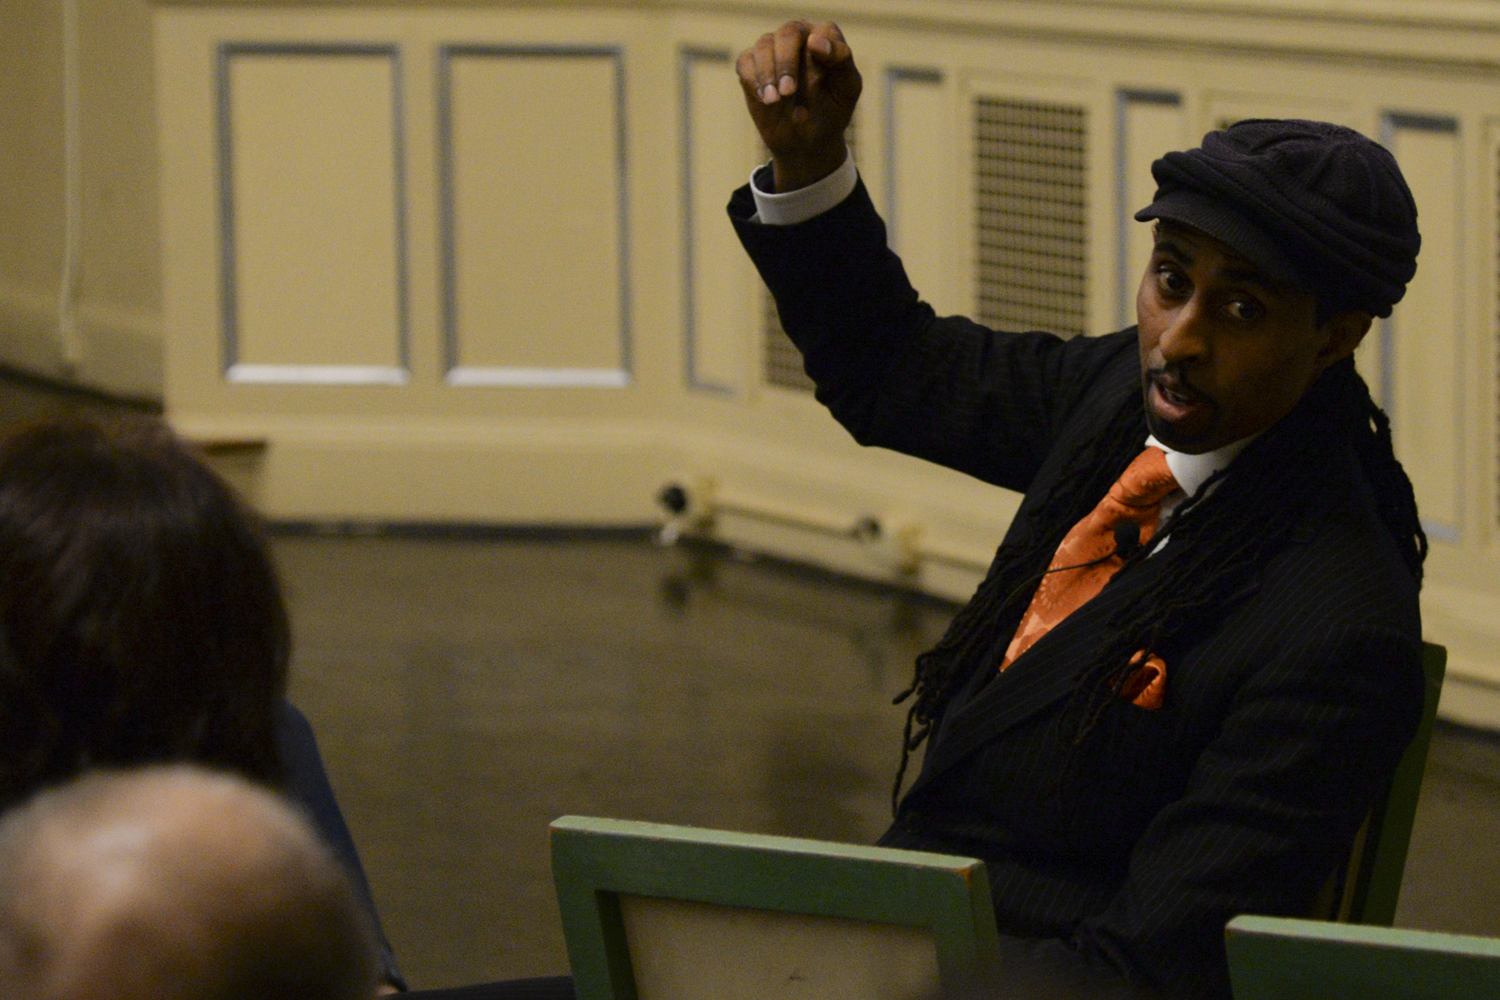 Former EPA employee Mustafa Santiago Ali sat in the audience at the Twentieth Century Club as he spoke about climate injustice Wednesday.